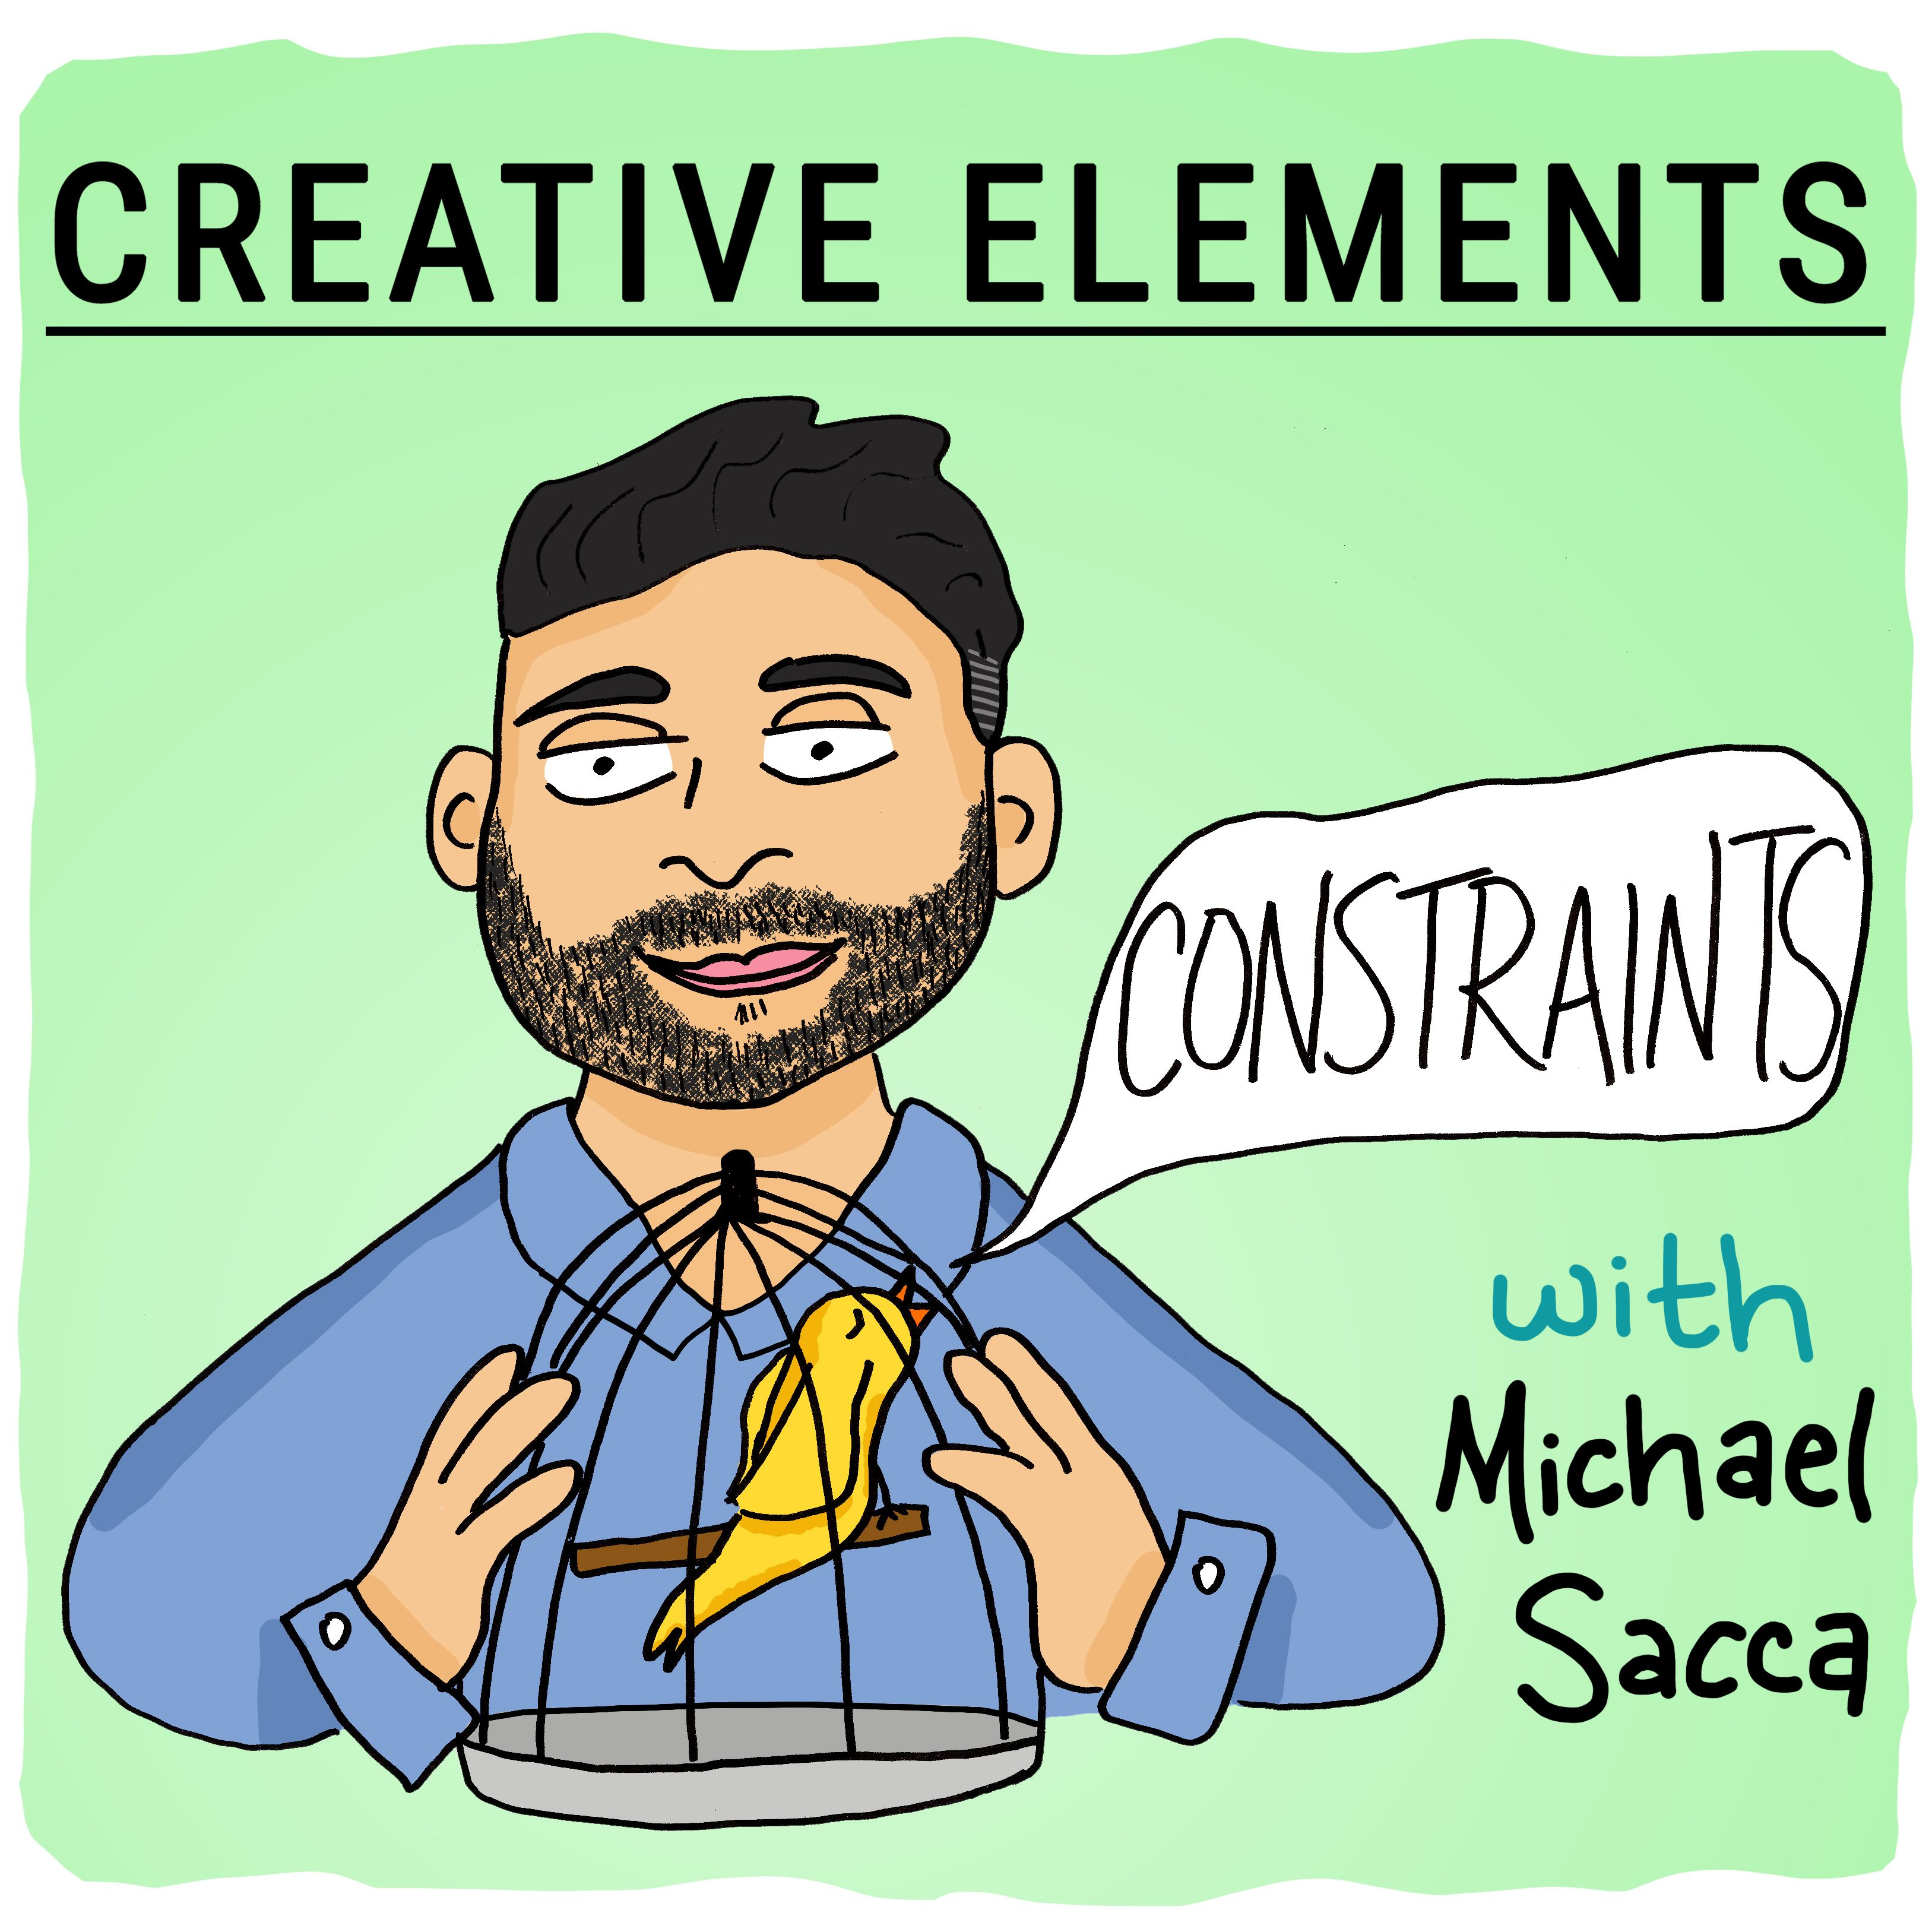 #12: Michael Sacca [Constraints]